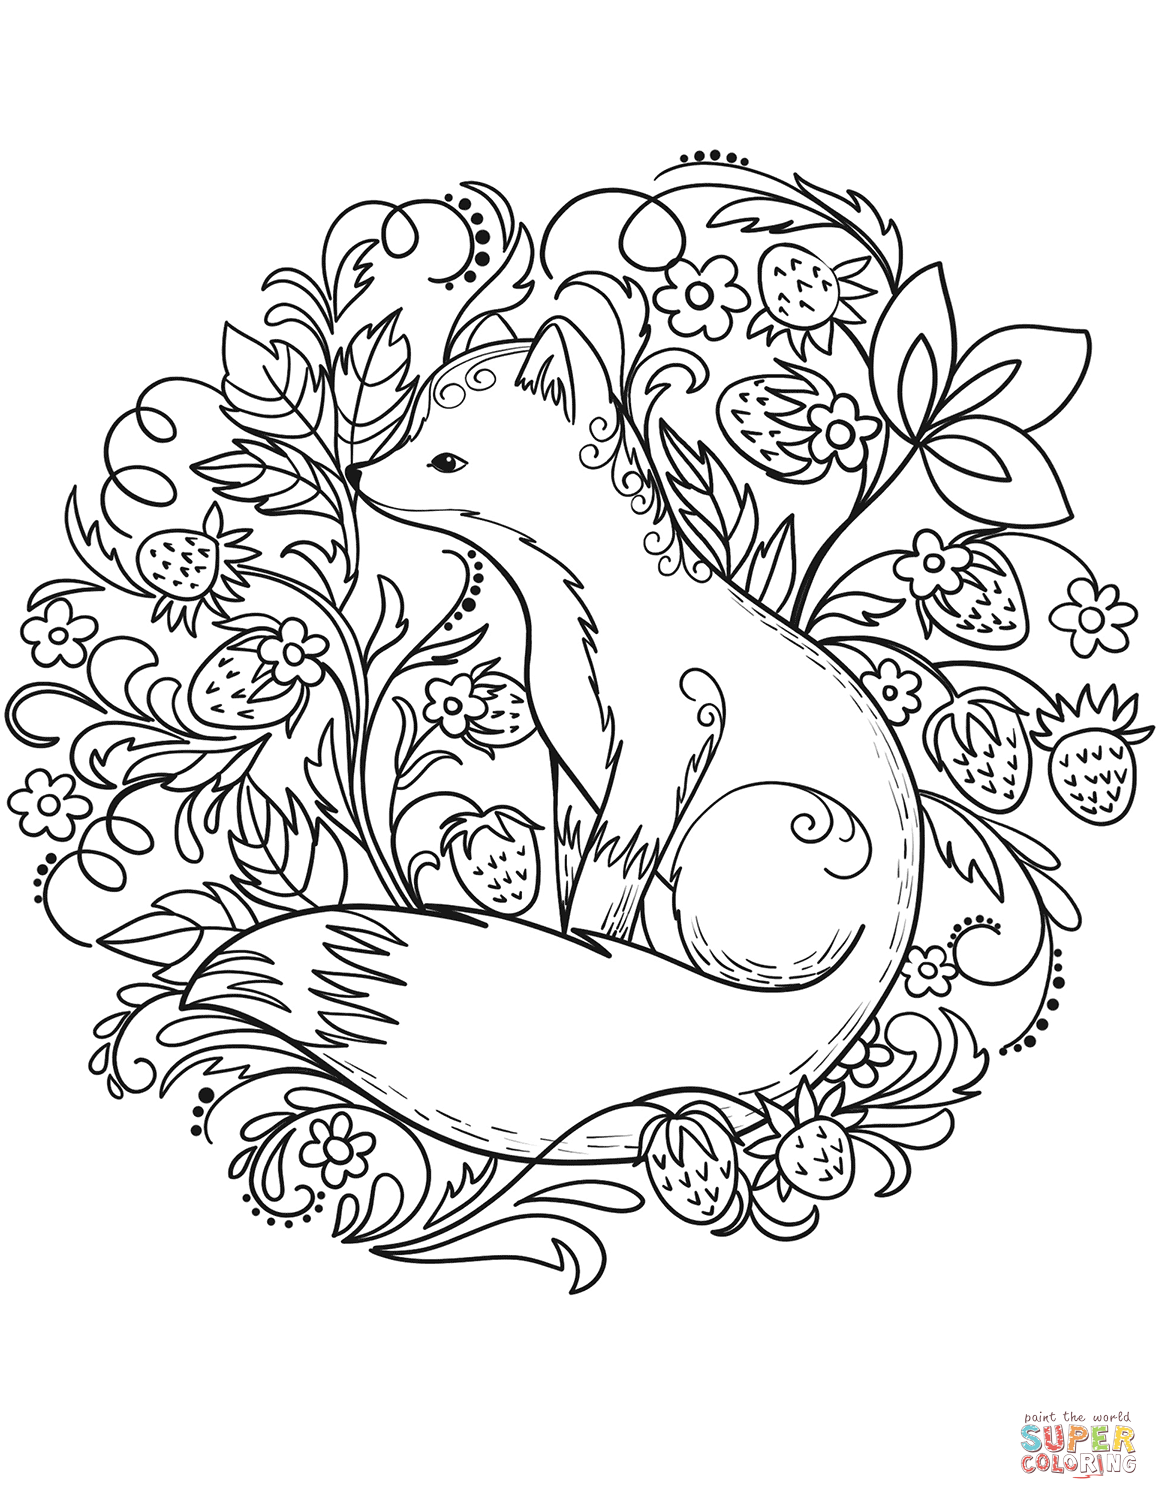 Fox Coloring Page From Red Fox Category Select From 27968 Printable Crafts Of Cartoons Nature Anim In 2020 Fox Coloring Page Coloring Pages Valentine Coloring Pages